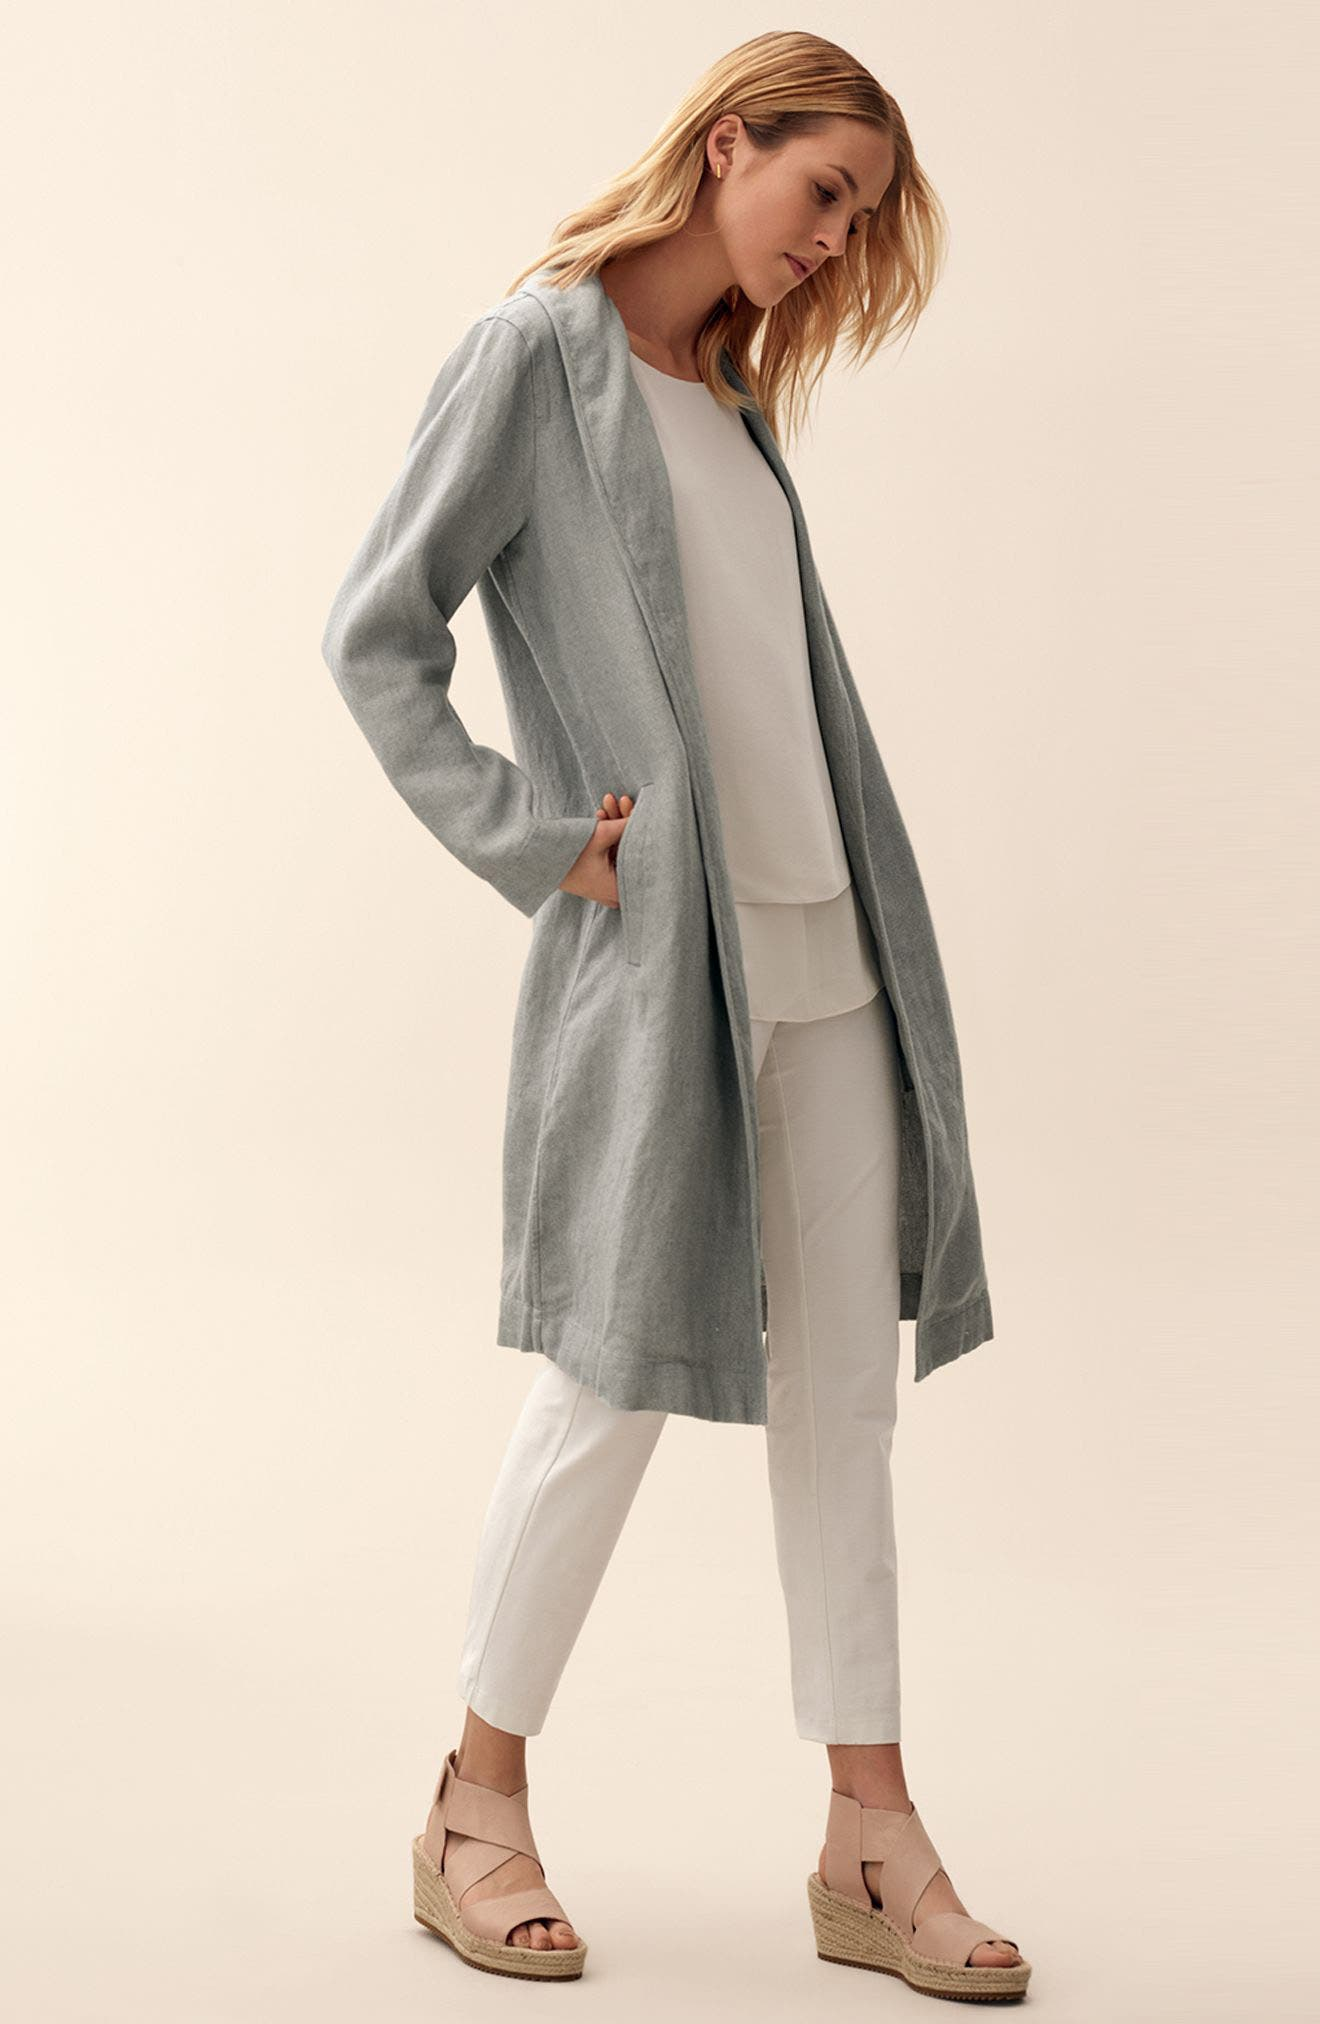 Eileen Fisher Jacket, Tank & Pants Outfit with Accessories